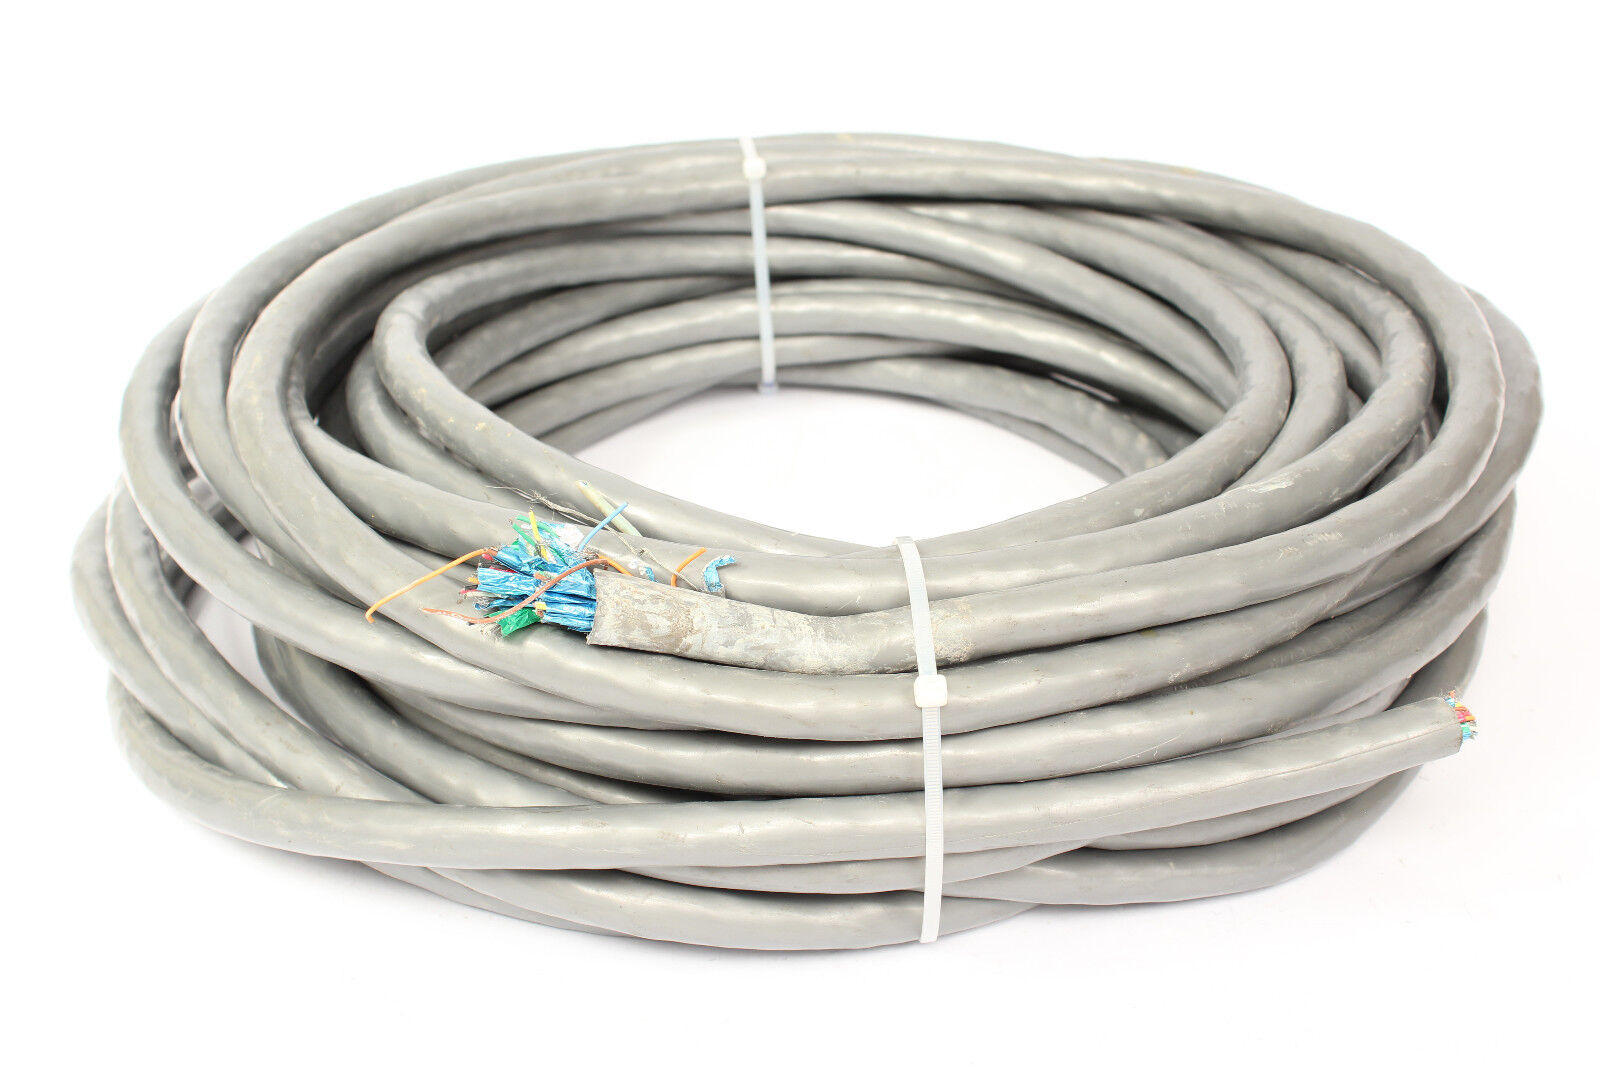 Belden 8773 27-Channel Snake Cable Bulk Bare Unterminated 86'